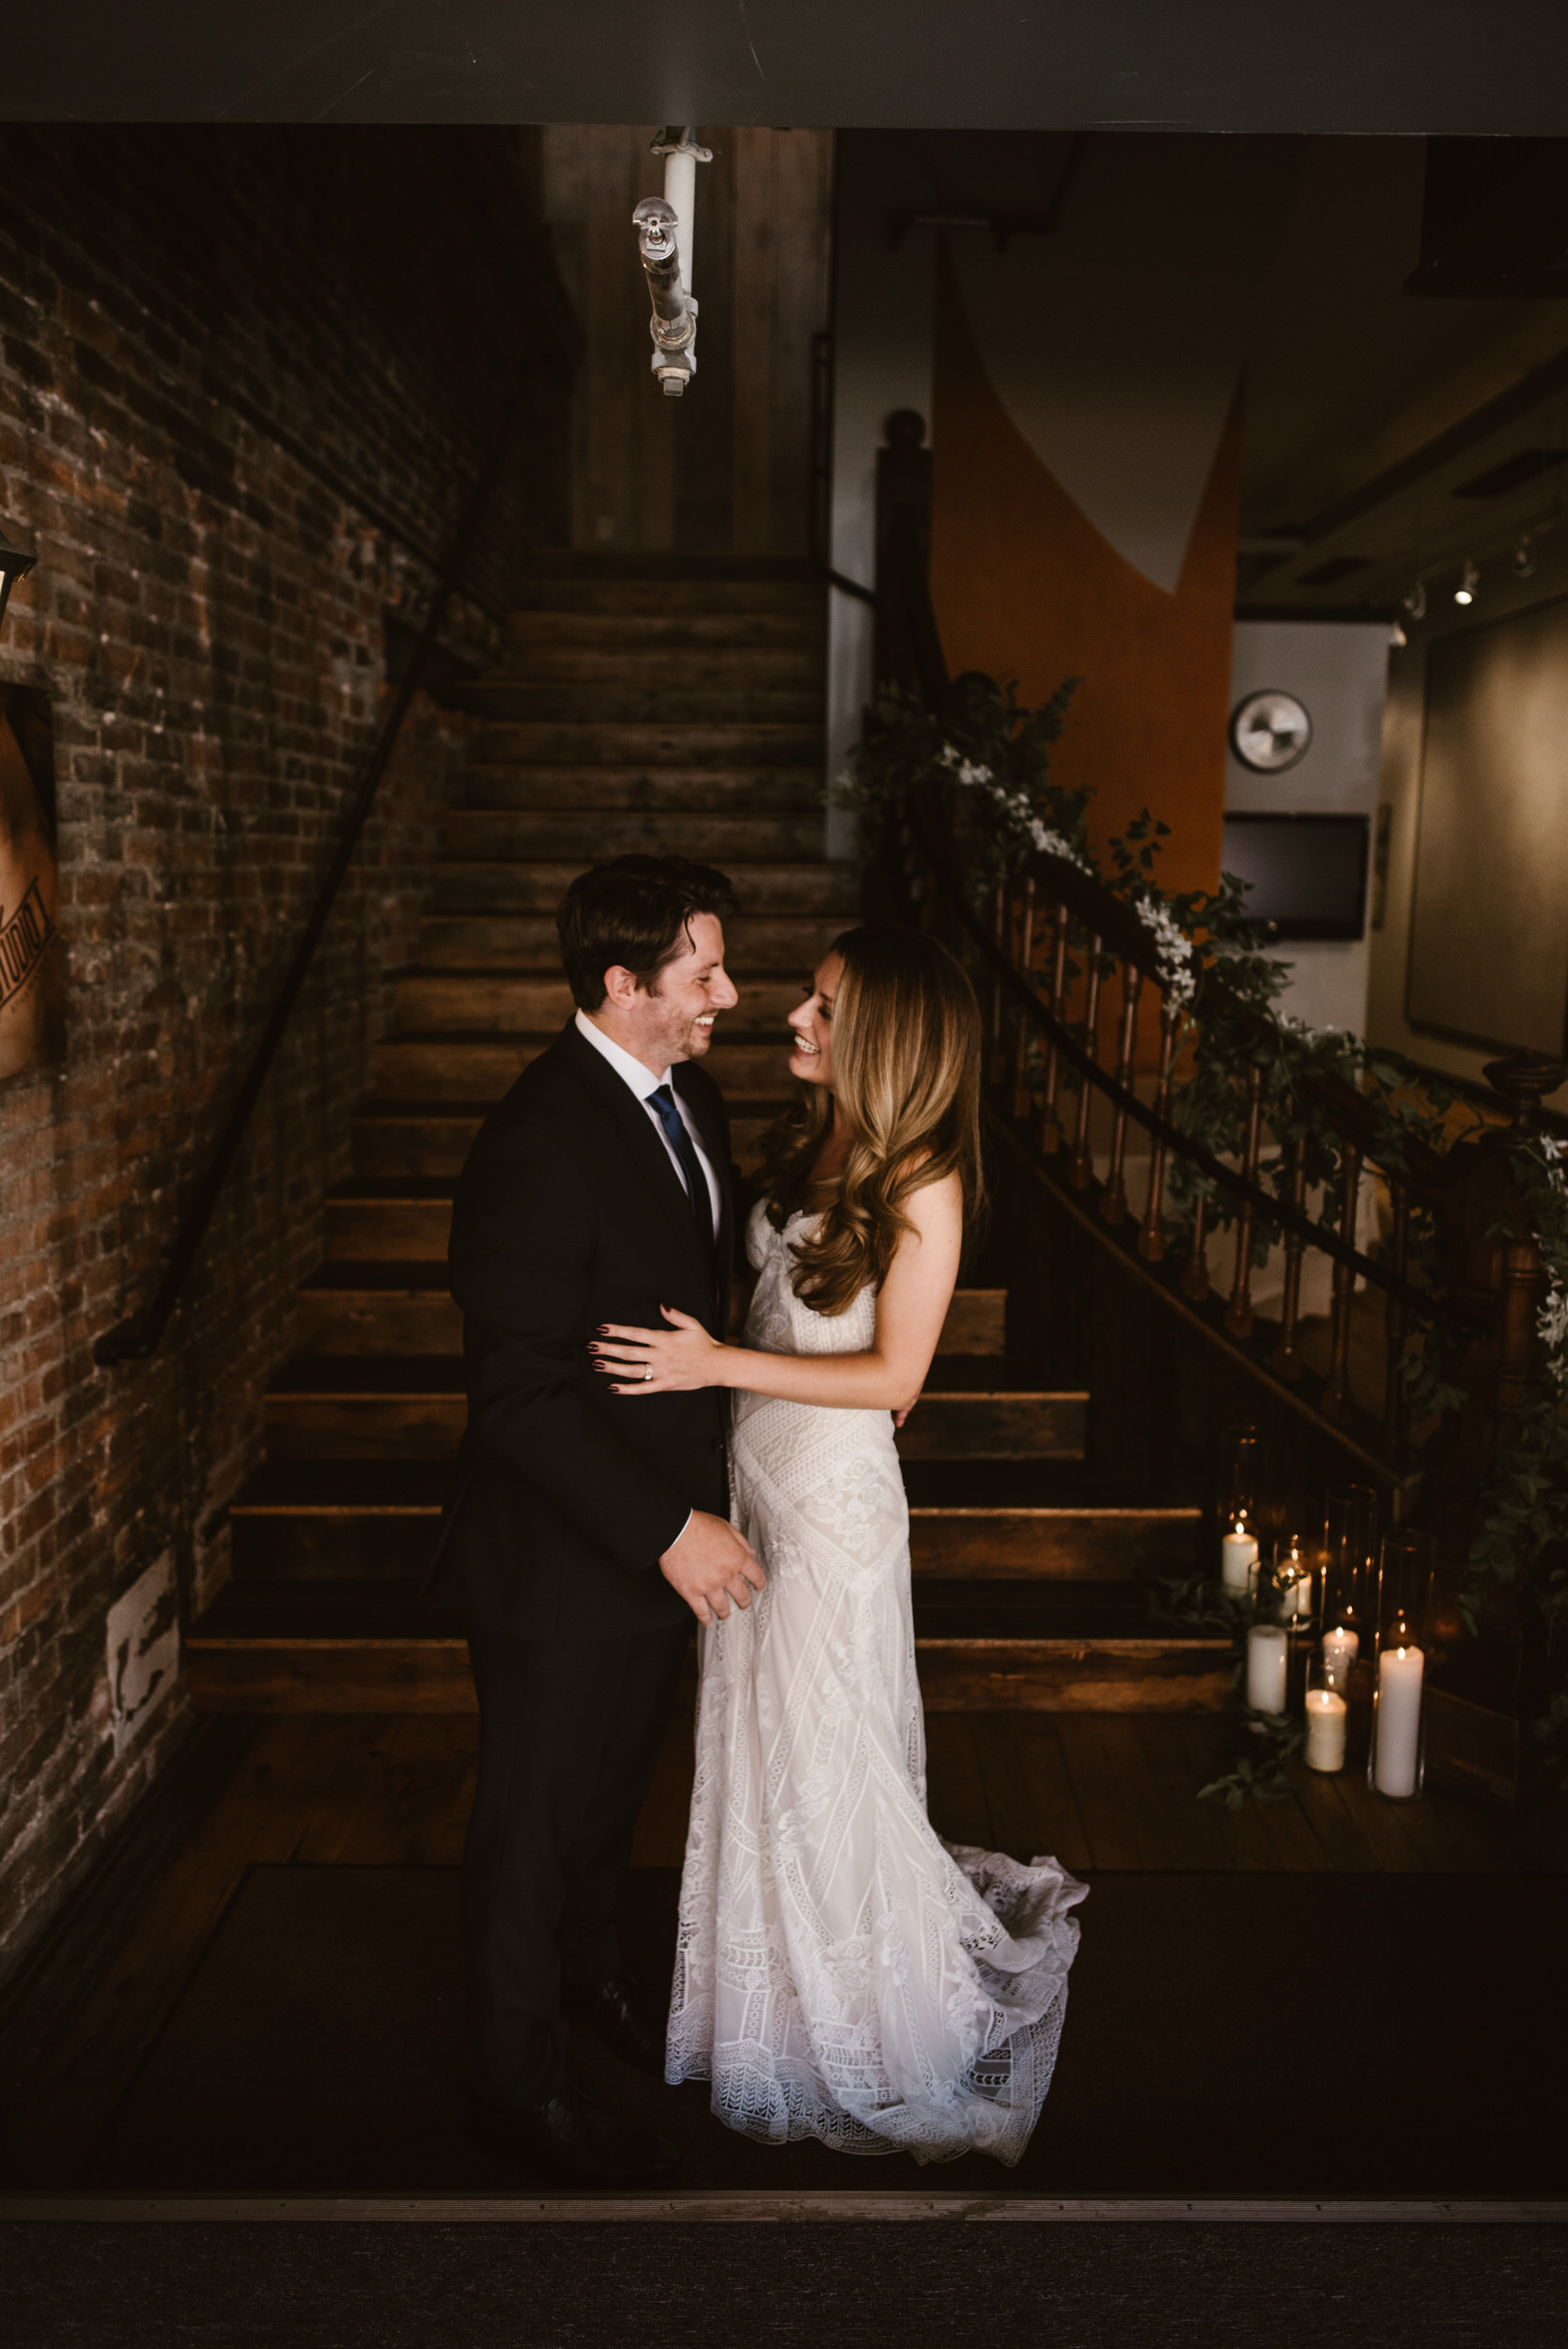 Stillwater-Minnesota-Wedding-Loft-at-Studio-J-Kaylie-Sirek-Photography-11.jpg